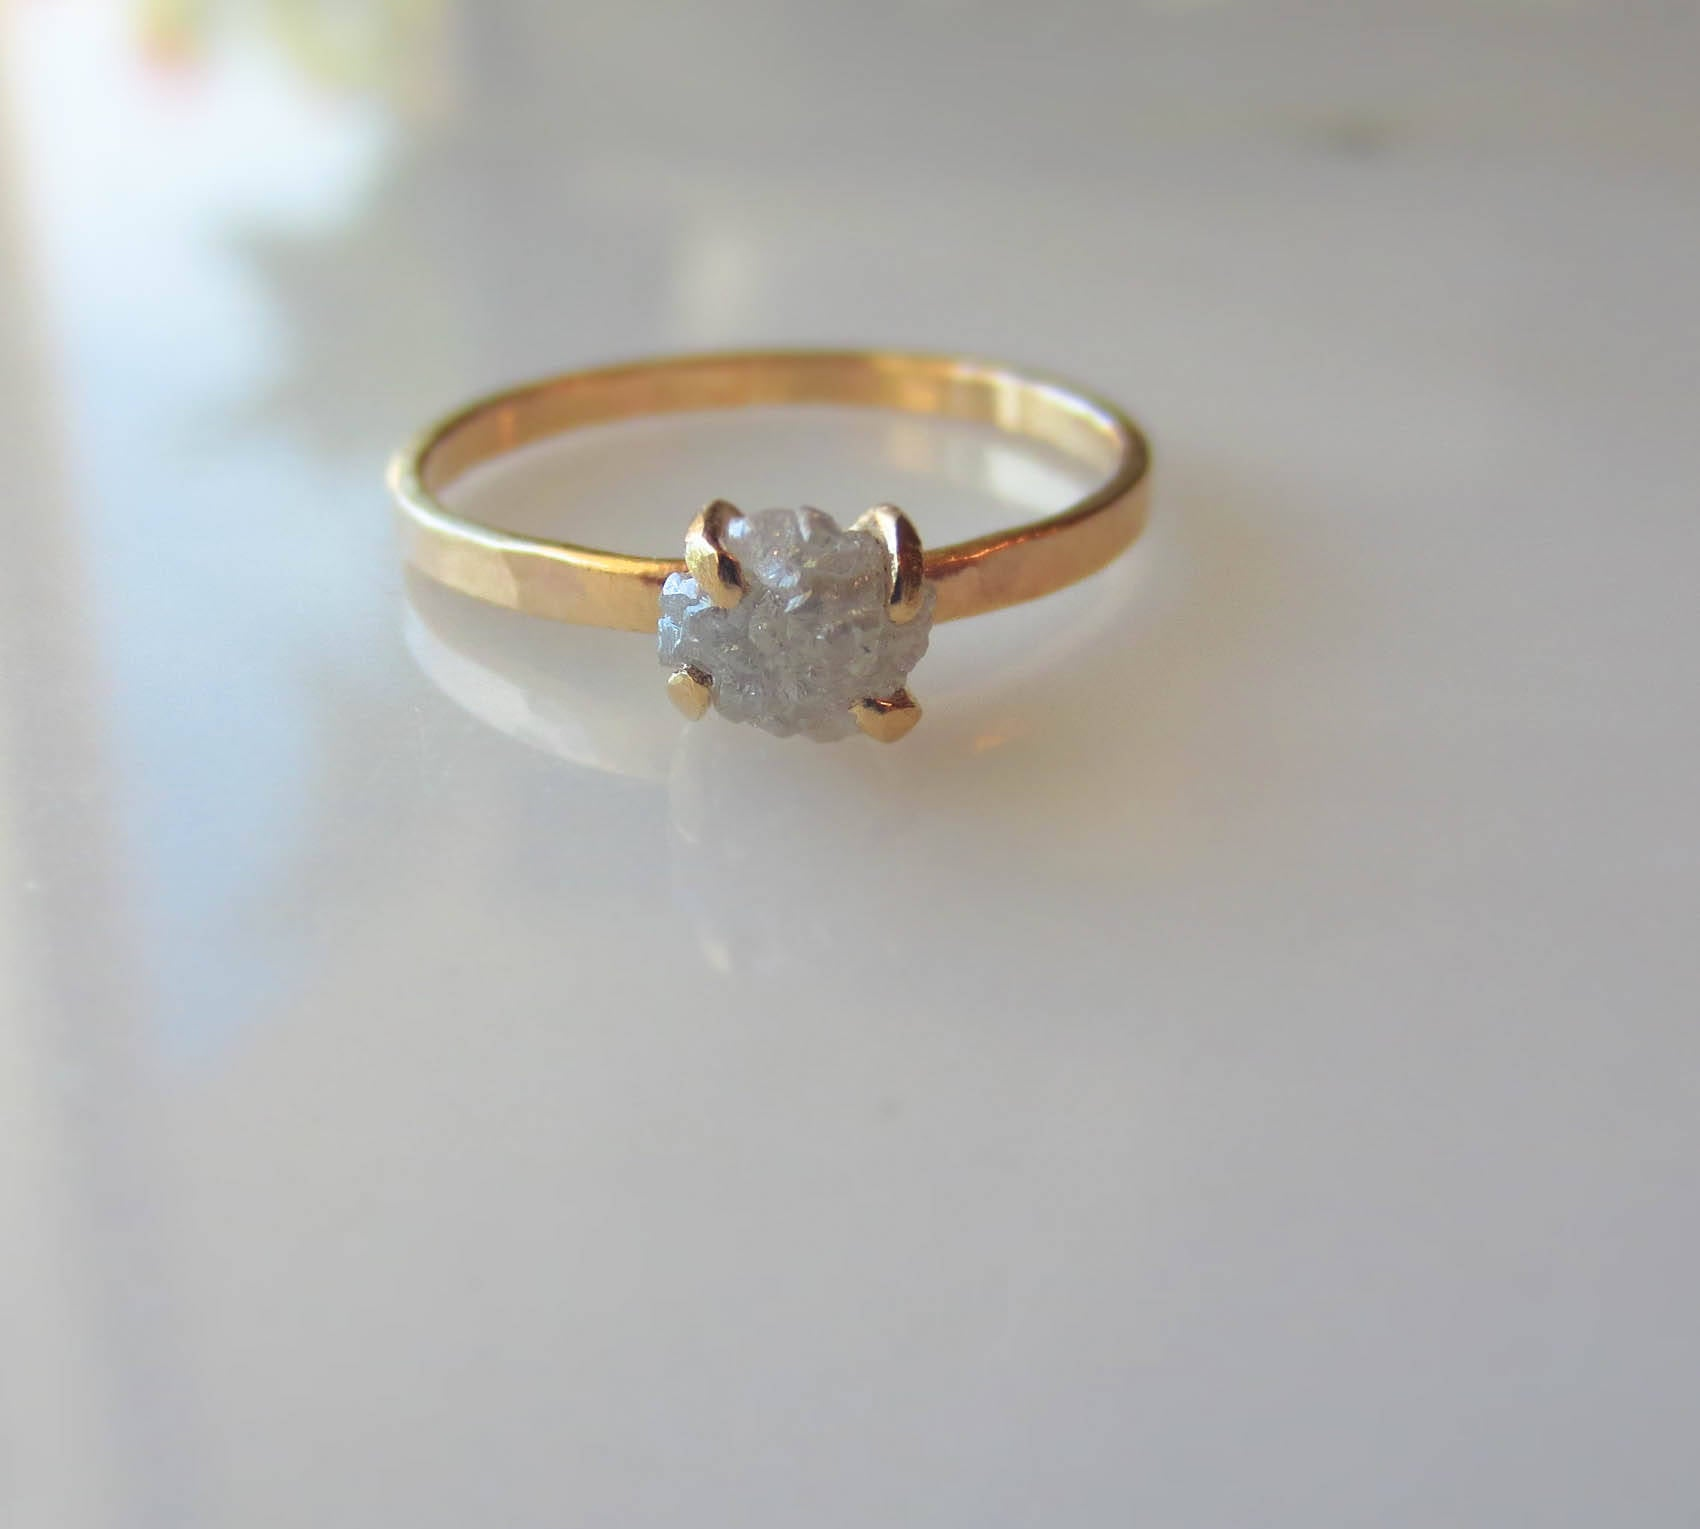 Raw Diamond Engagement Ring | Handmade 14k Gold Engagement Ring